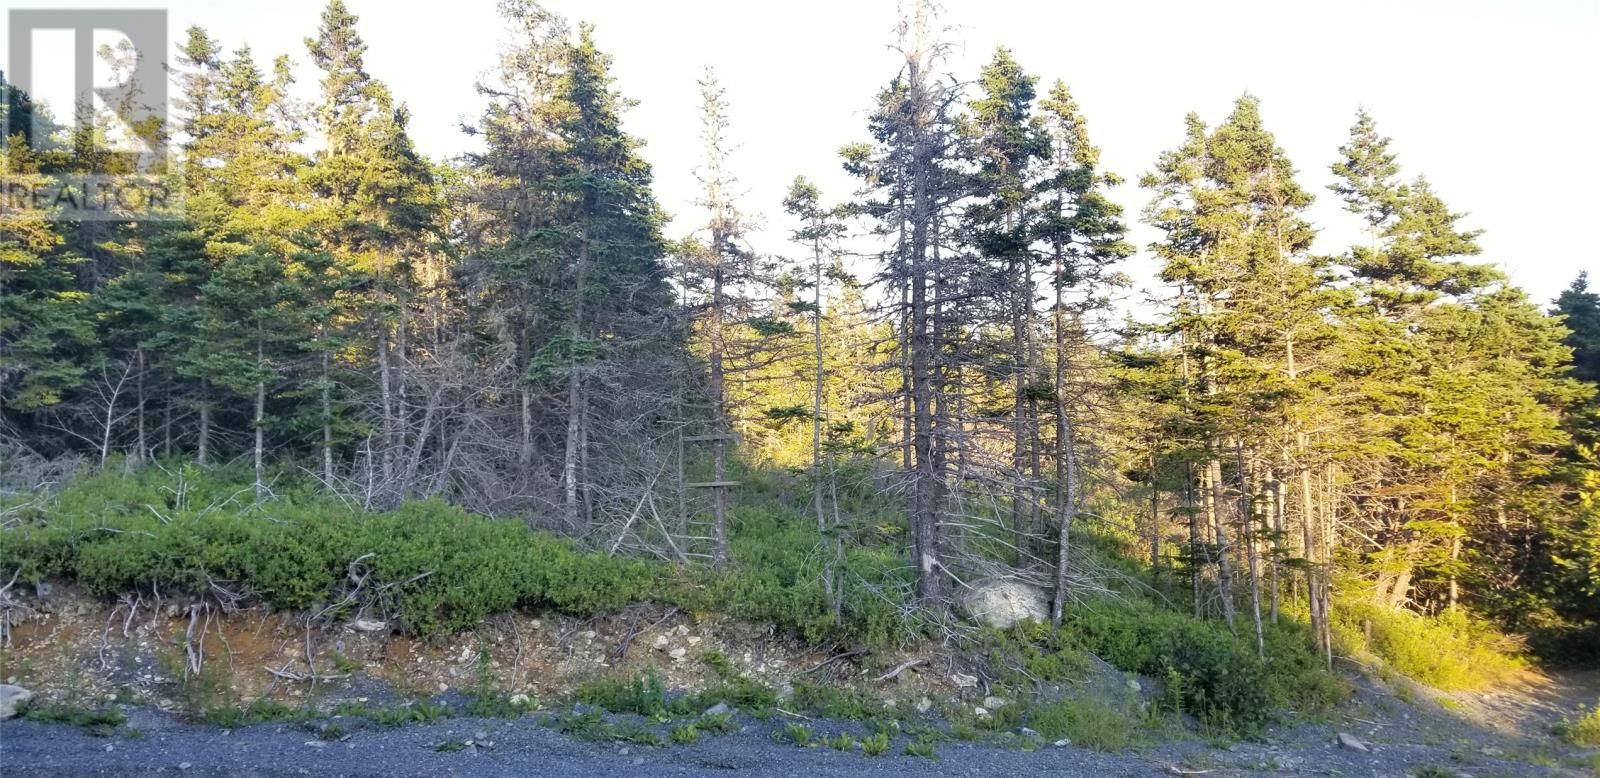 Main Photo: 18-24 Butts Road in Spaniard's Bay: Vacant Land for sale : MLS®# 1234275